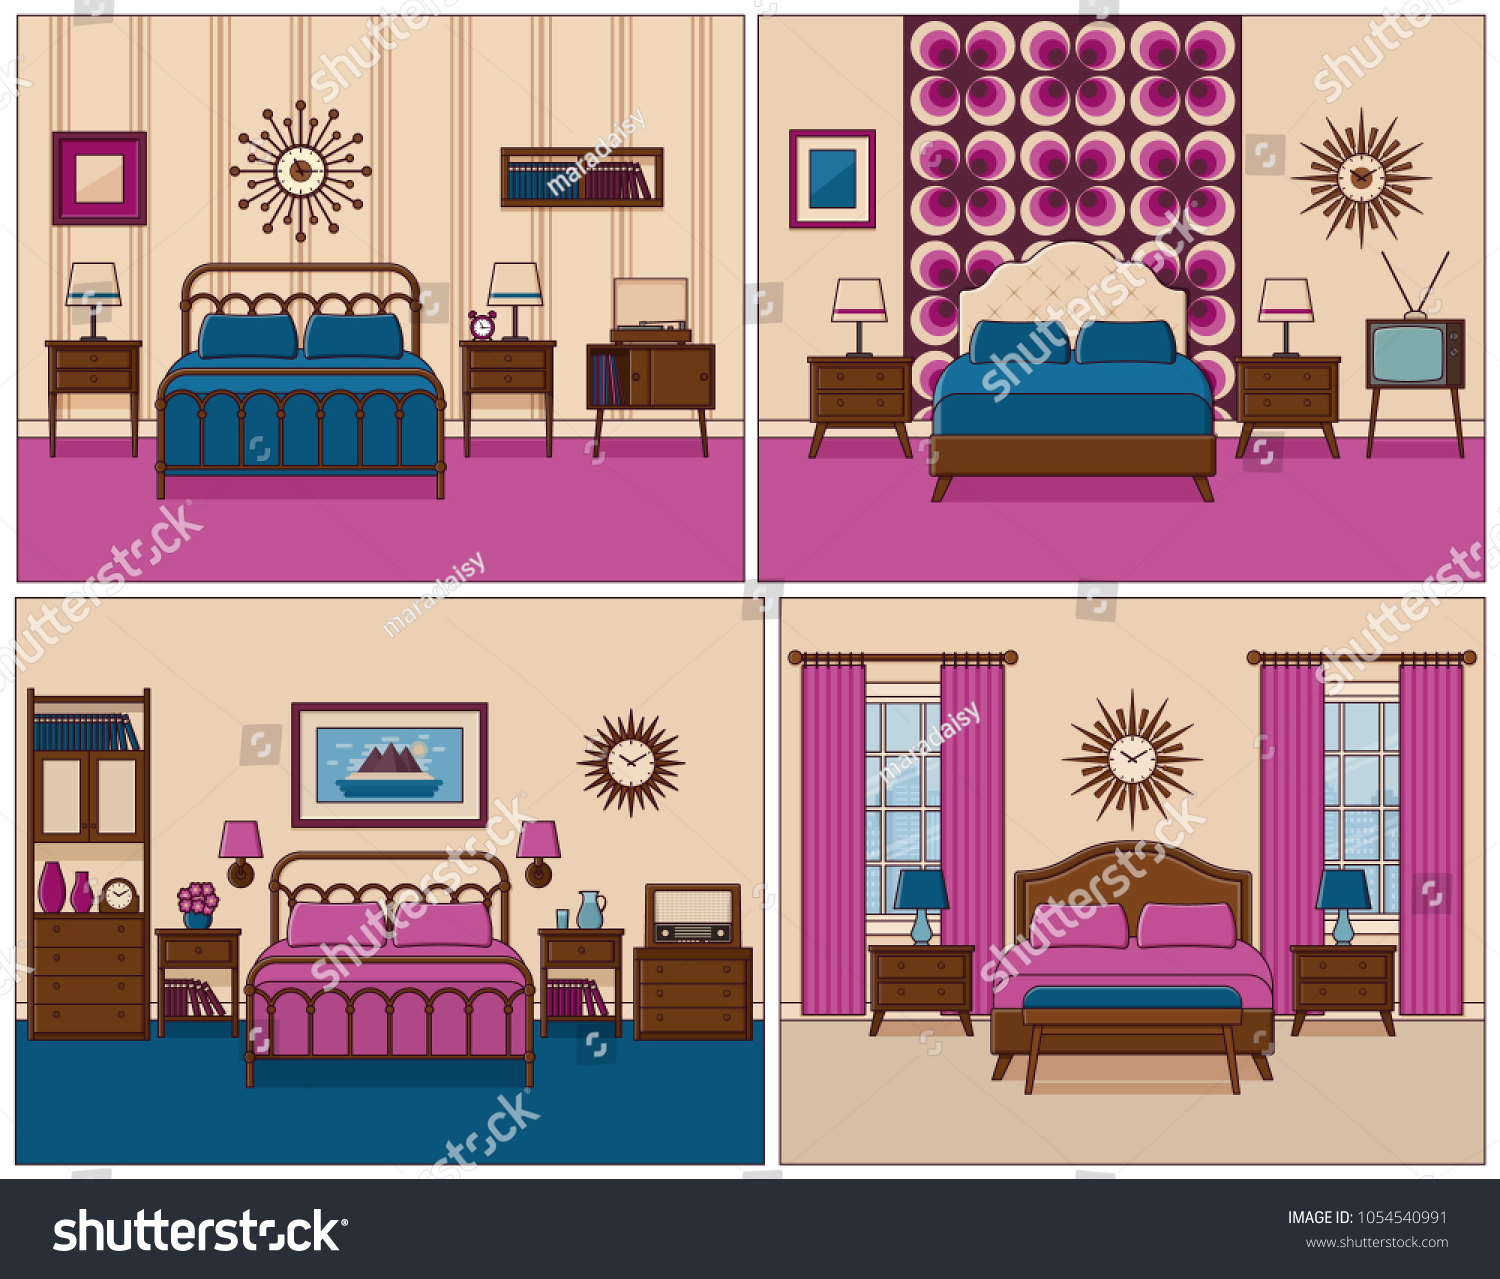 Bedroom Interior Hotel Rooms Bed Vector Stock Vector (Royalty Free ...